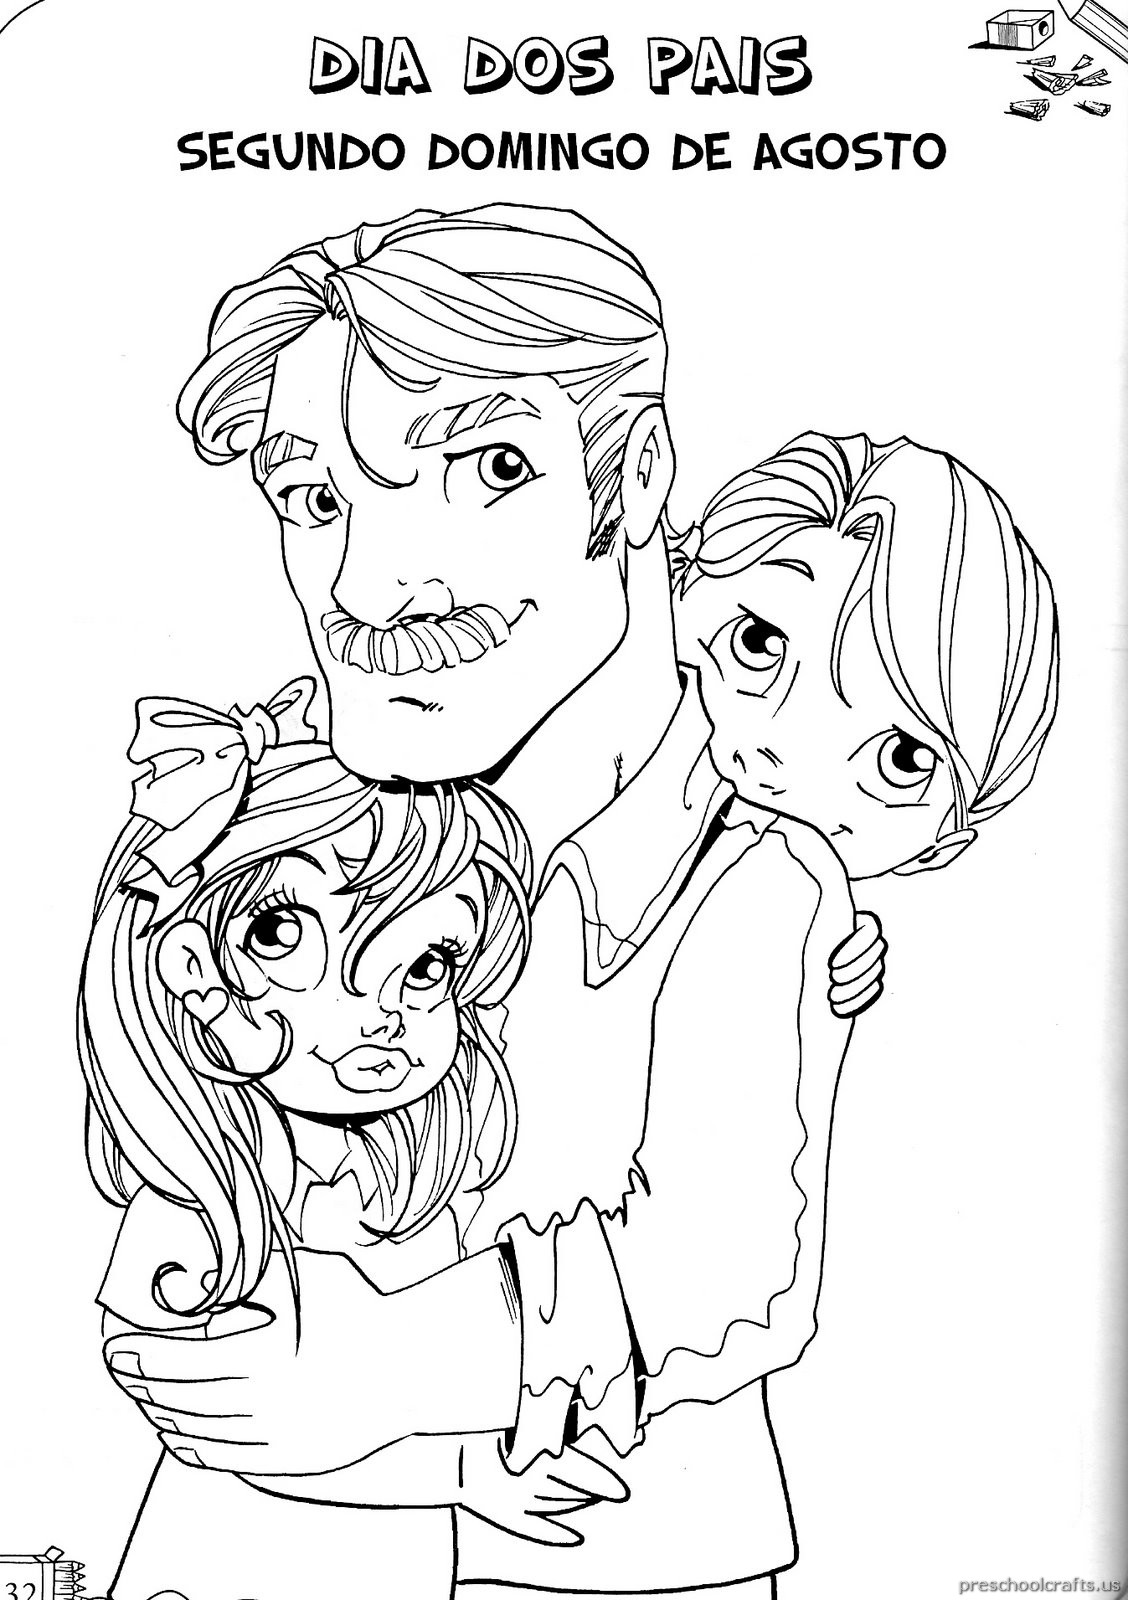 fathers day coloring pages for kids - printable father 39 s day coloring pages for kids preschool